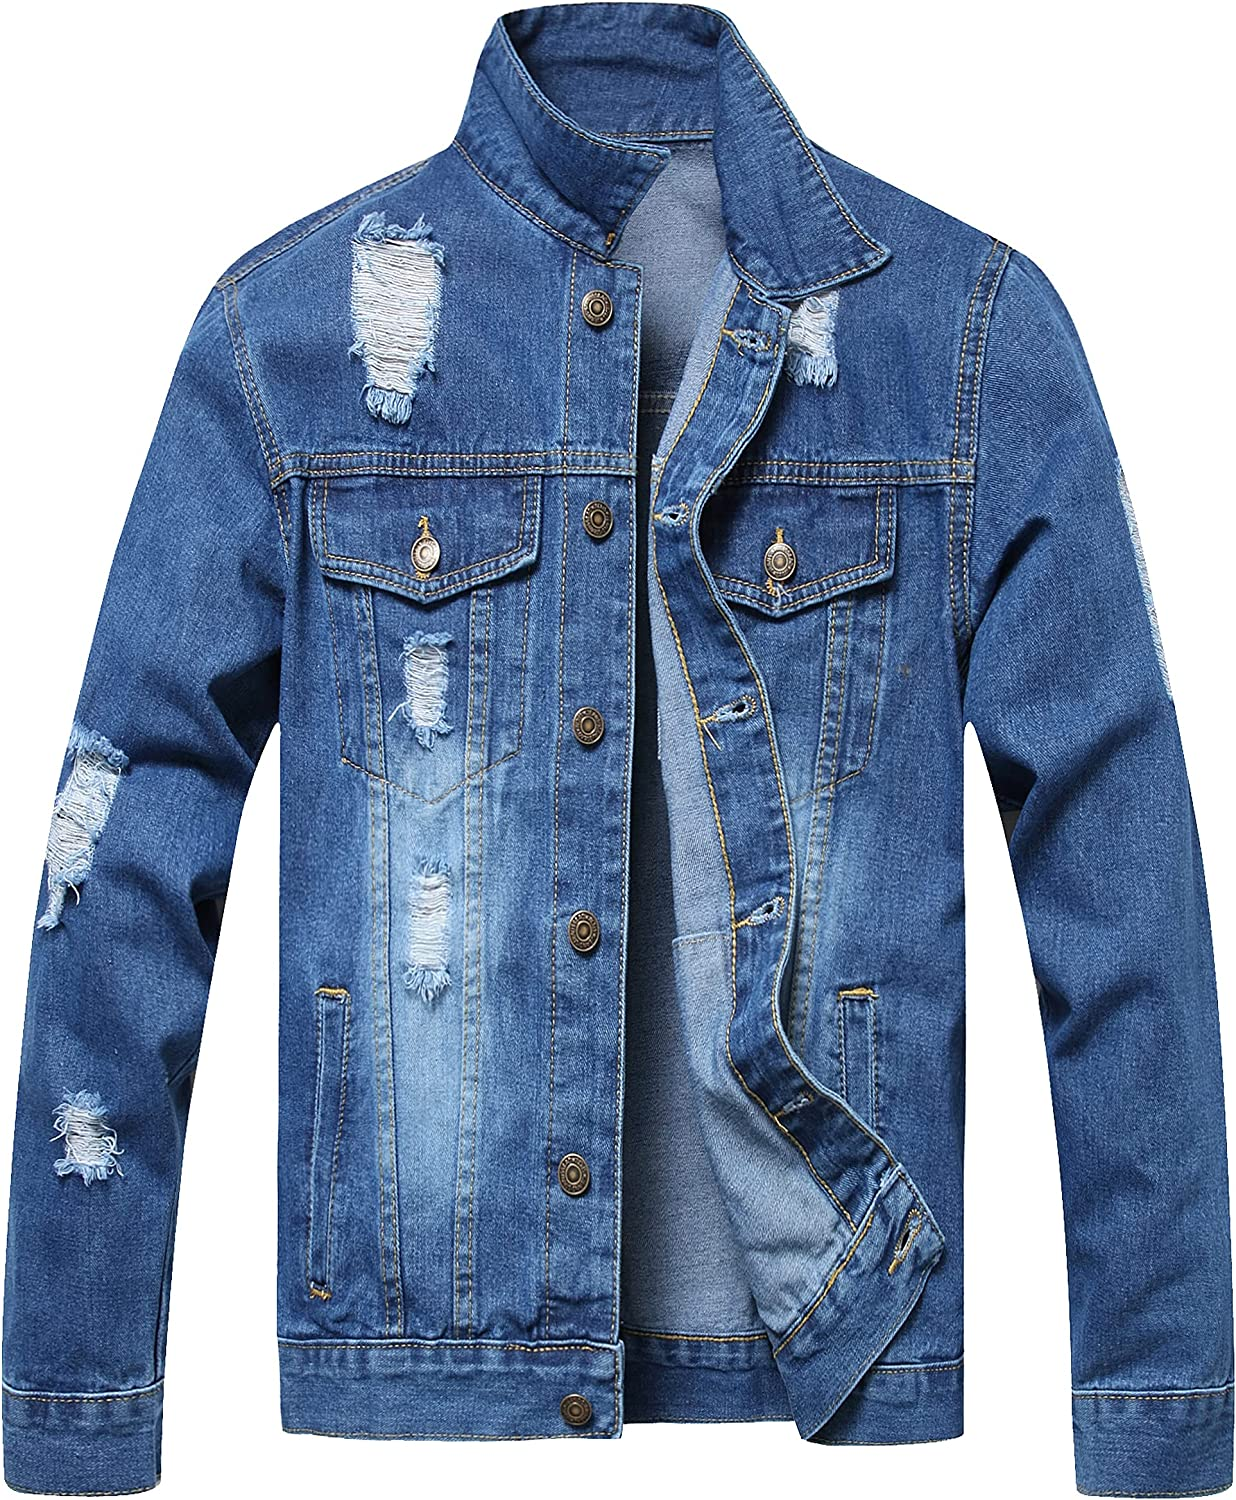 JSACYTF Men's Denim Jacket,Classic Ripped Jean Jacket for Men with Holes